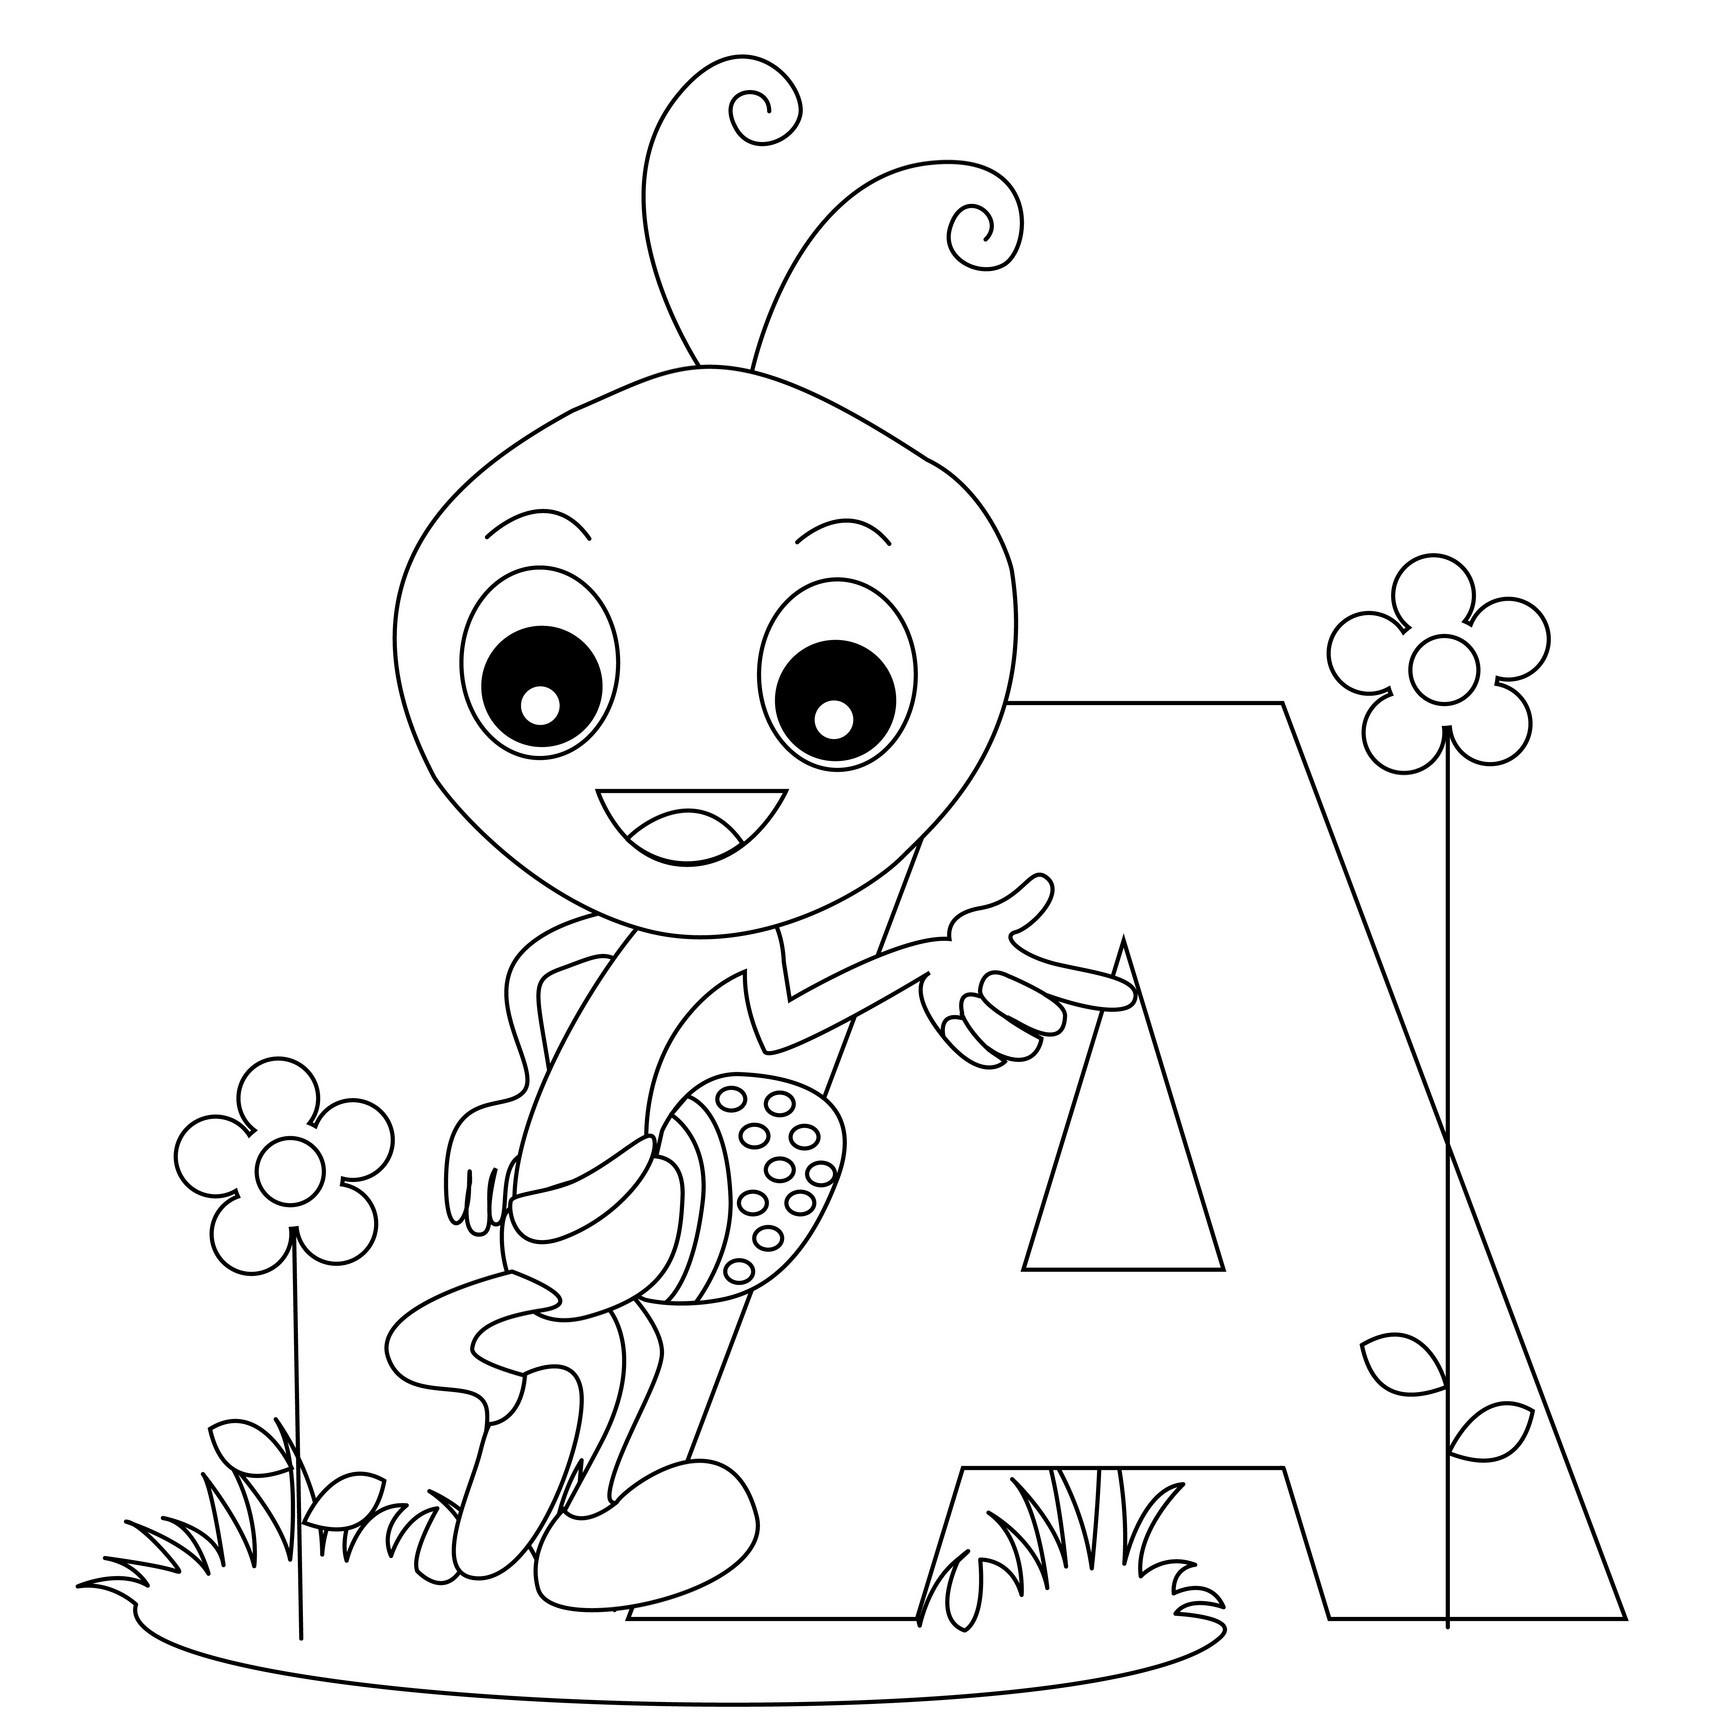 Free Printable Alphabet Coloring Pages For Kids Best Free Coloring Pages For Printable